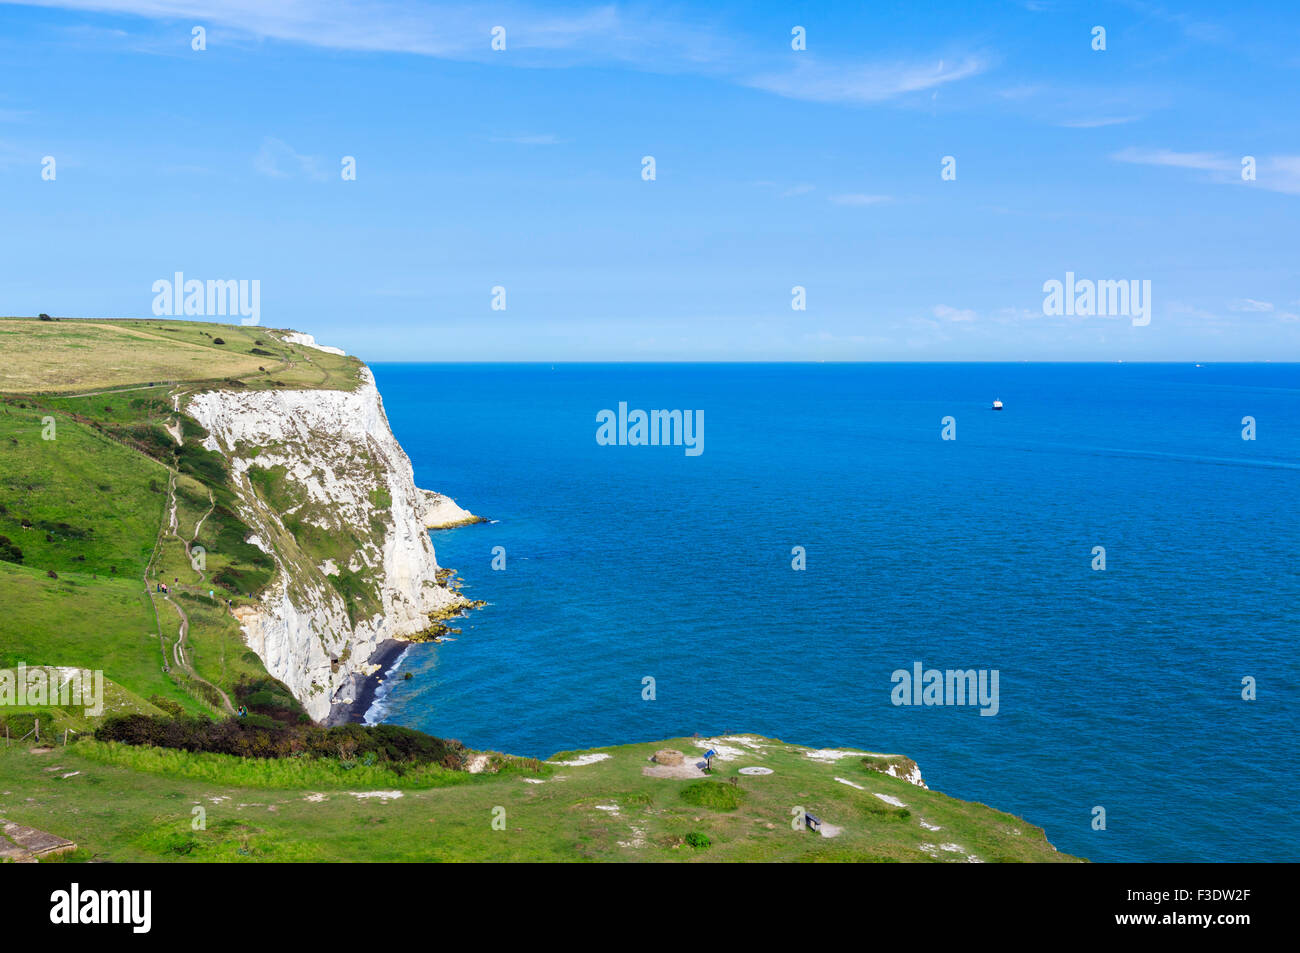 View from the clifftop path at the White Cliffs, Dover, Kent, England, UK - Stock Image